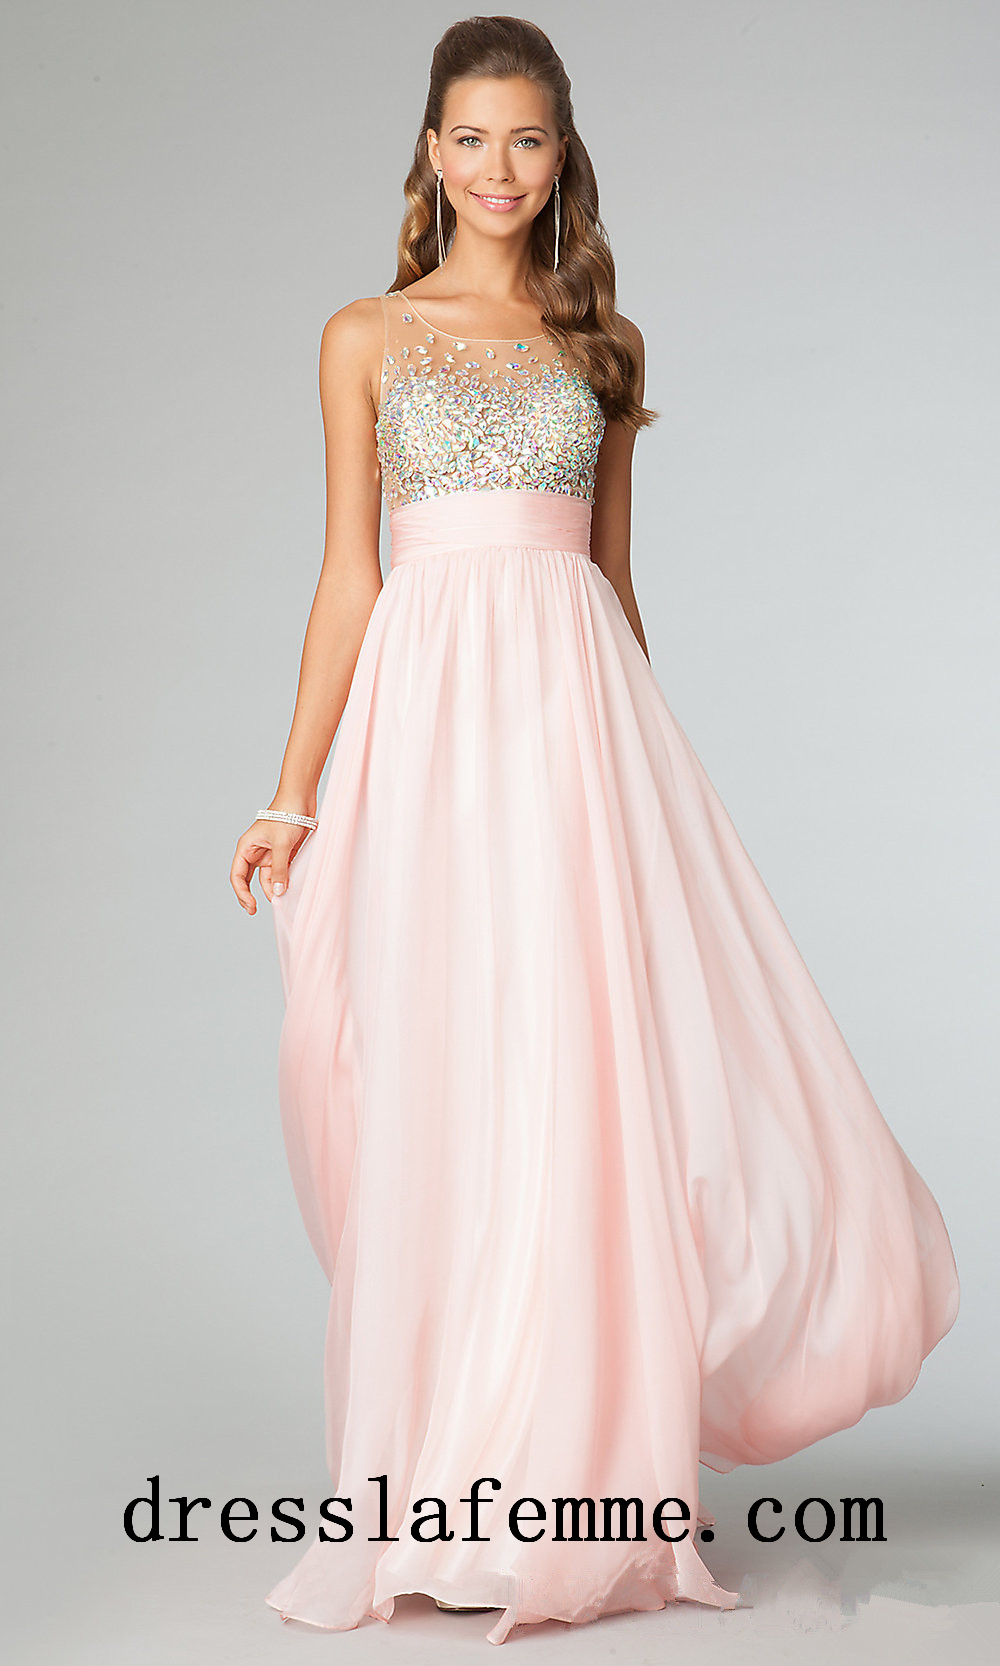 Cheap Prom Dresses In La - Long Dresses Online